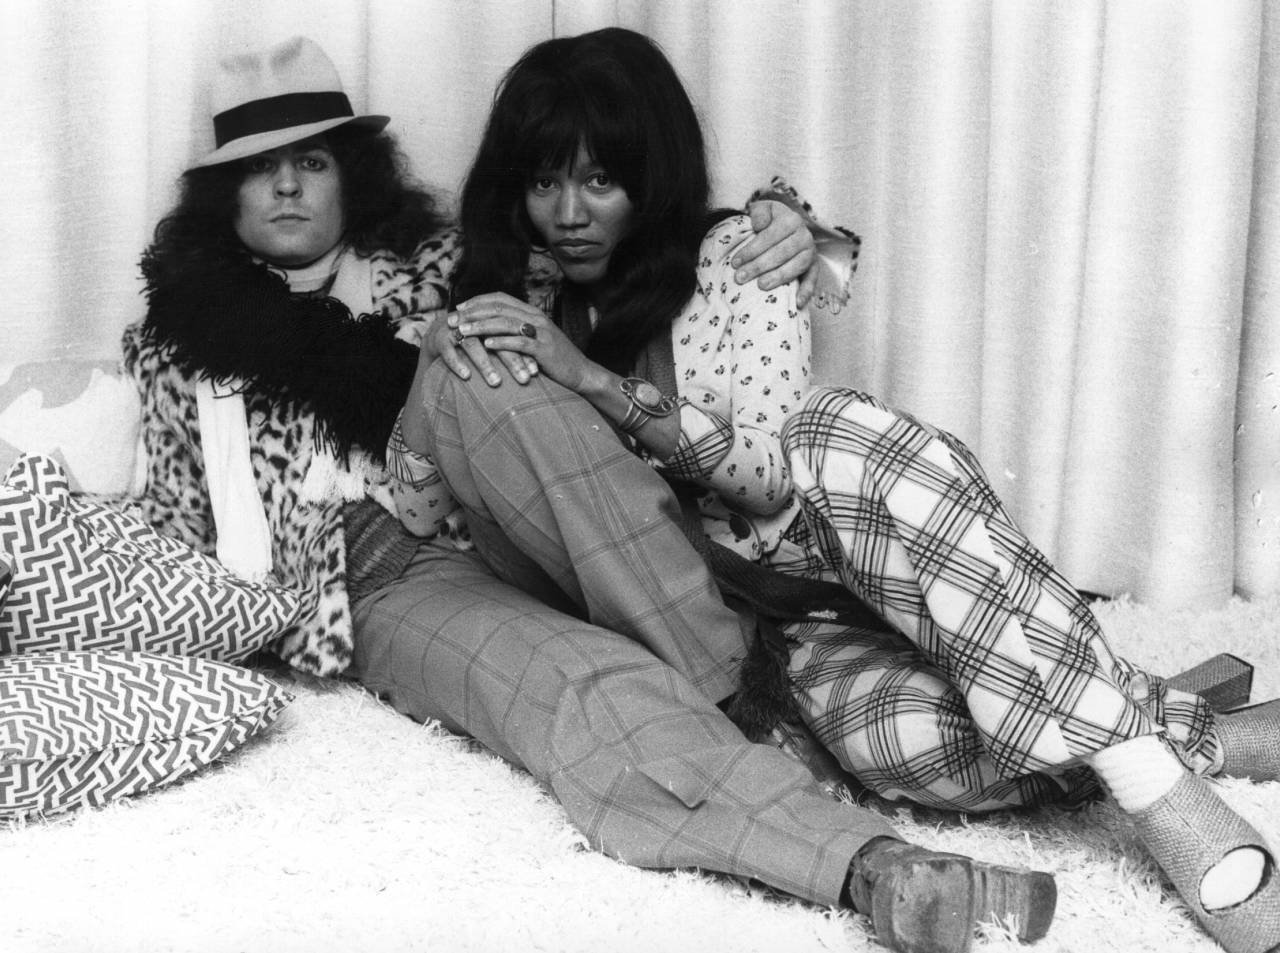 circa 1974: British singer, songwriter and guitarist Marc Bolan (1947 - 1977), of the pop group T Rex, reclines with his girlfriend, singer Gloria Jones. (Photo by Keystone/Getty Images)